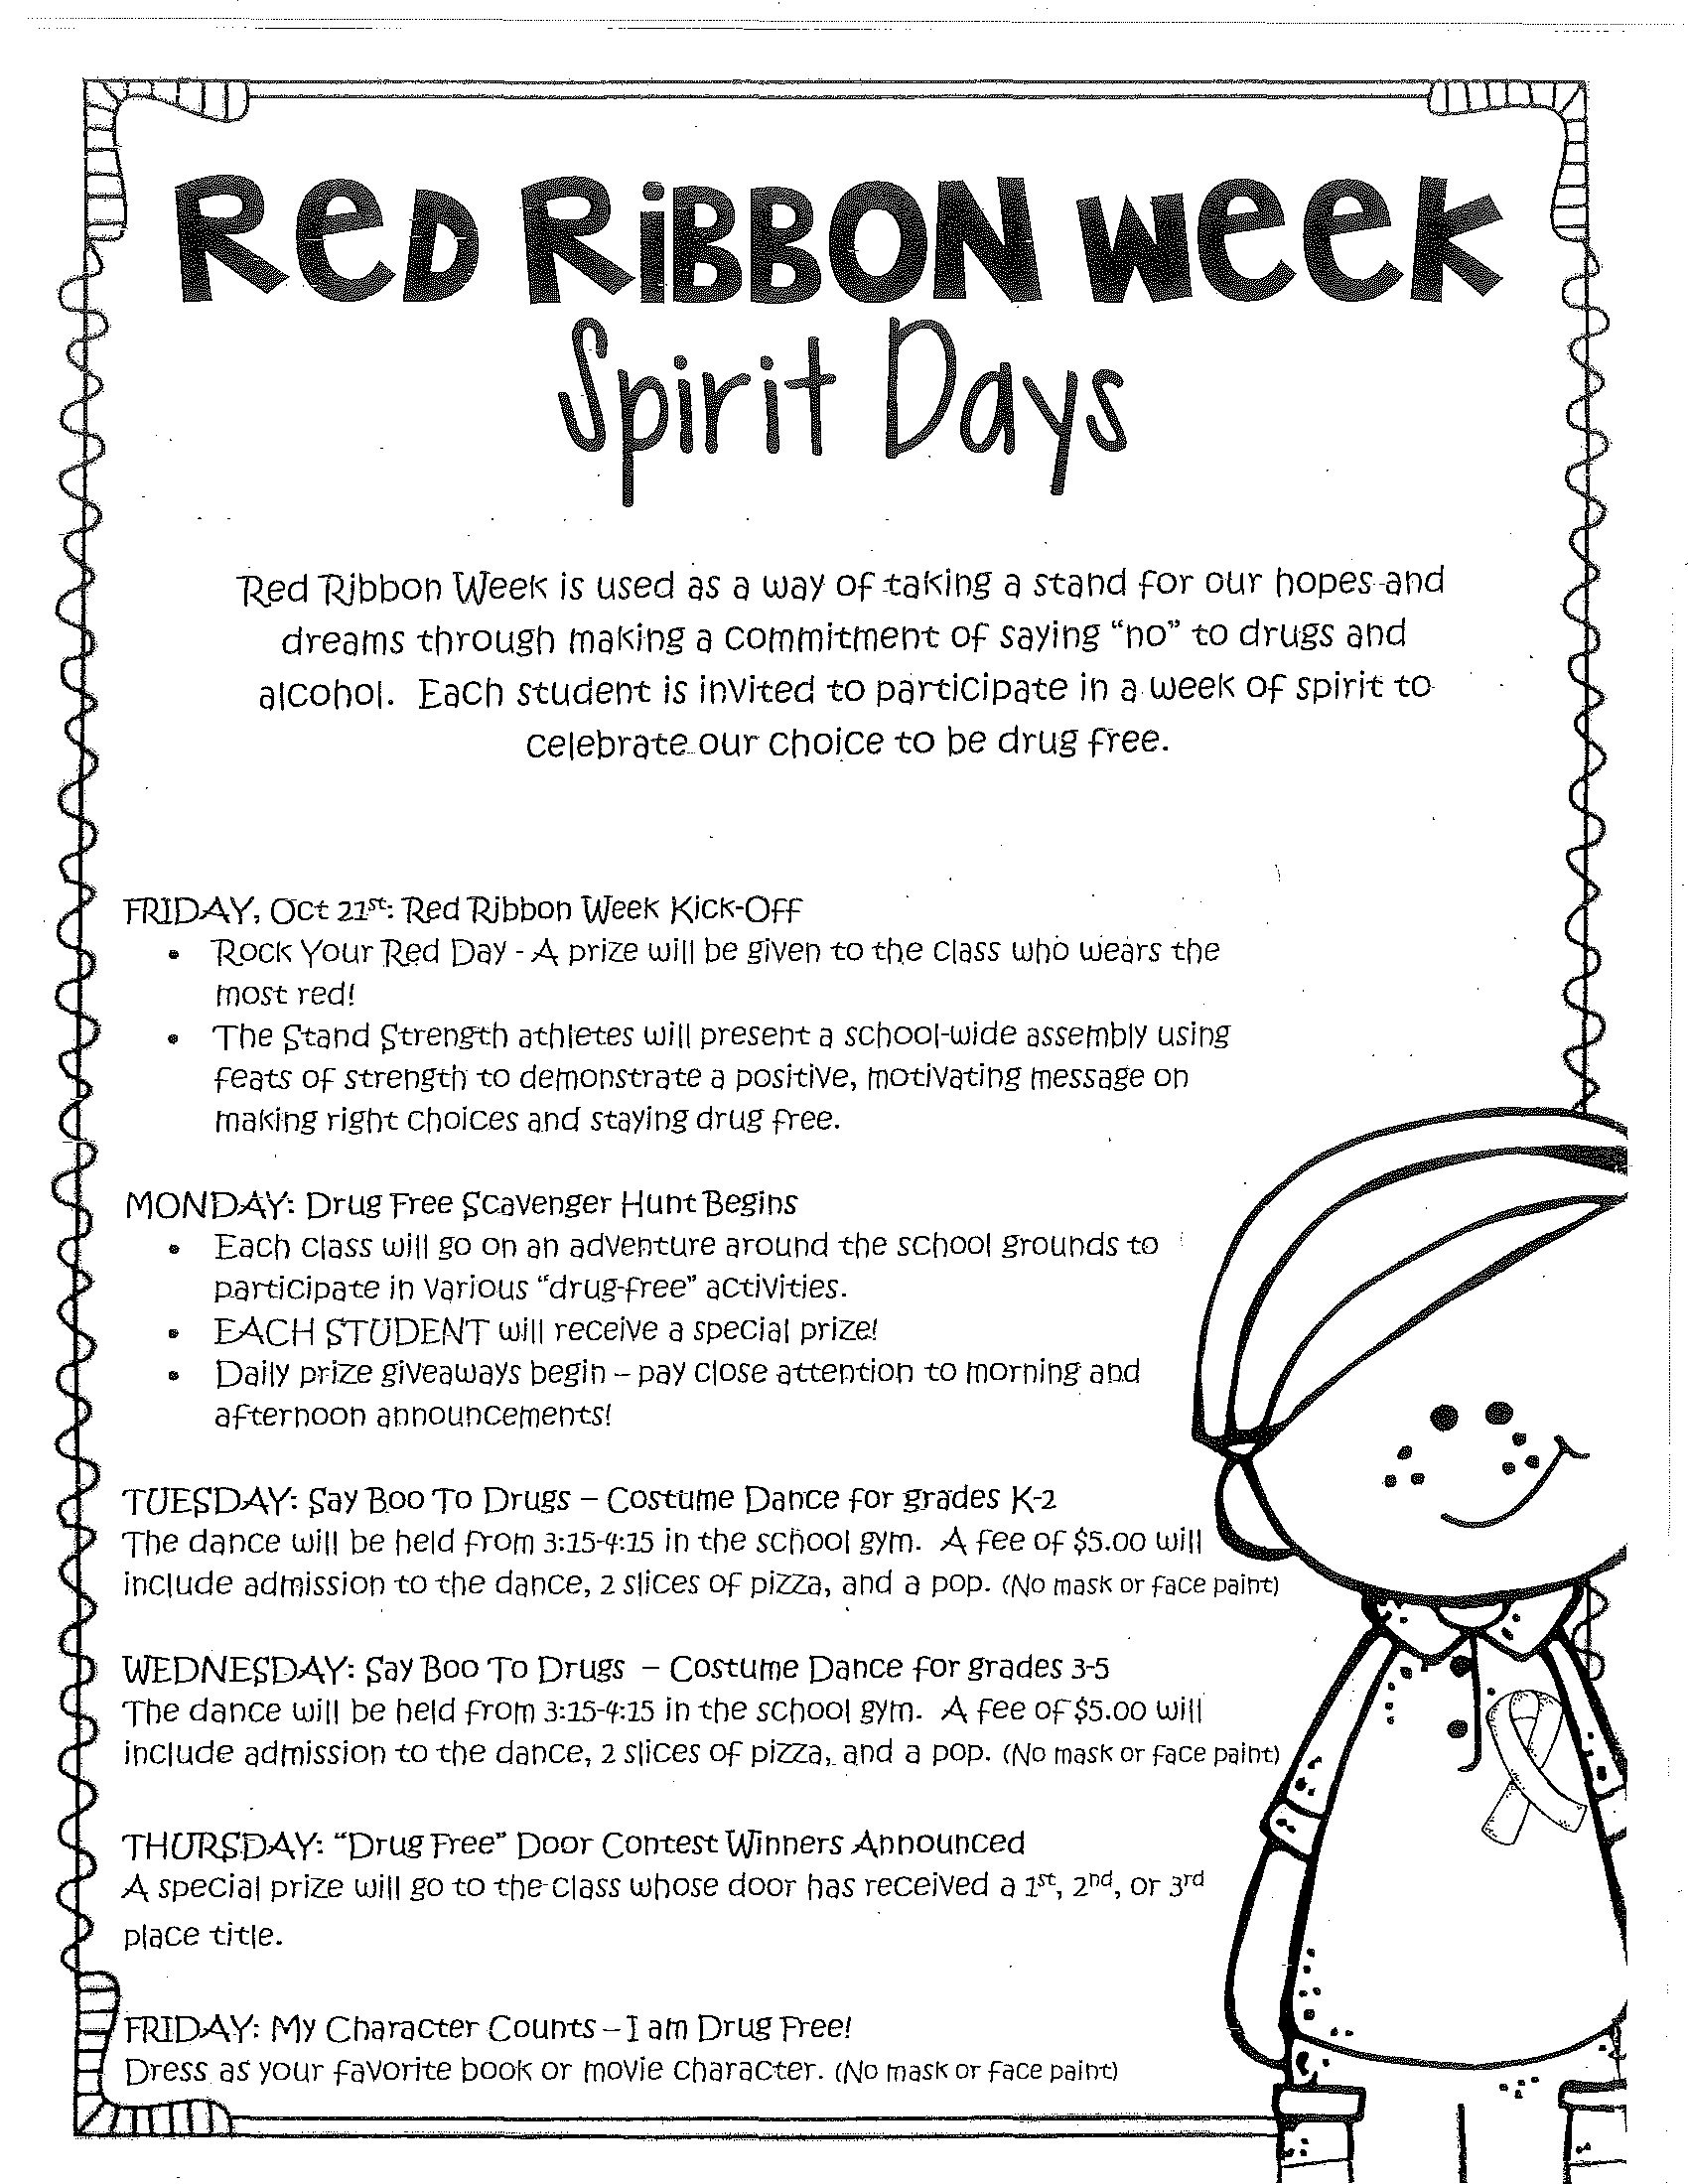 10 Most Recommended Spirit Week Ideas For Elementary School mves red ribbon week spirit days mt vernon elementary school 2020